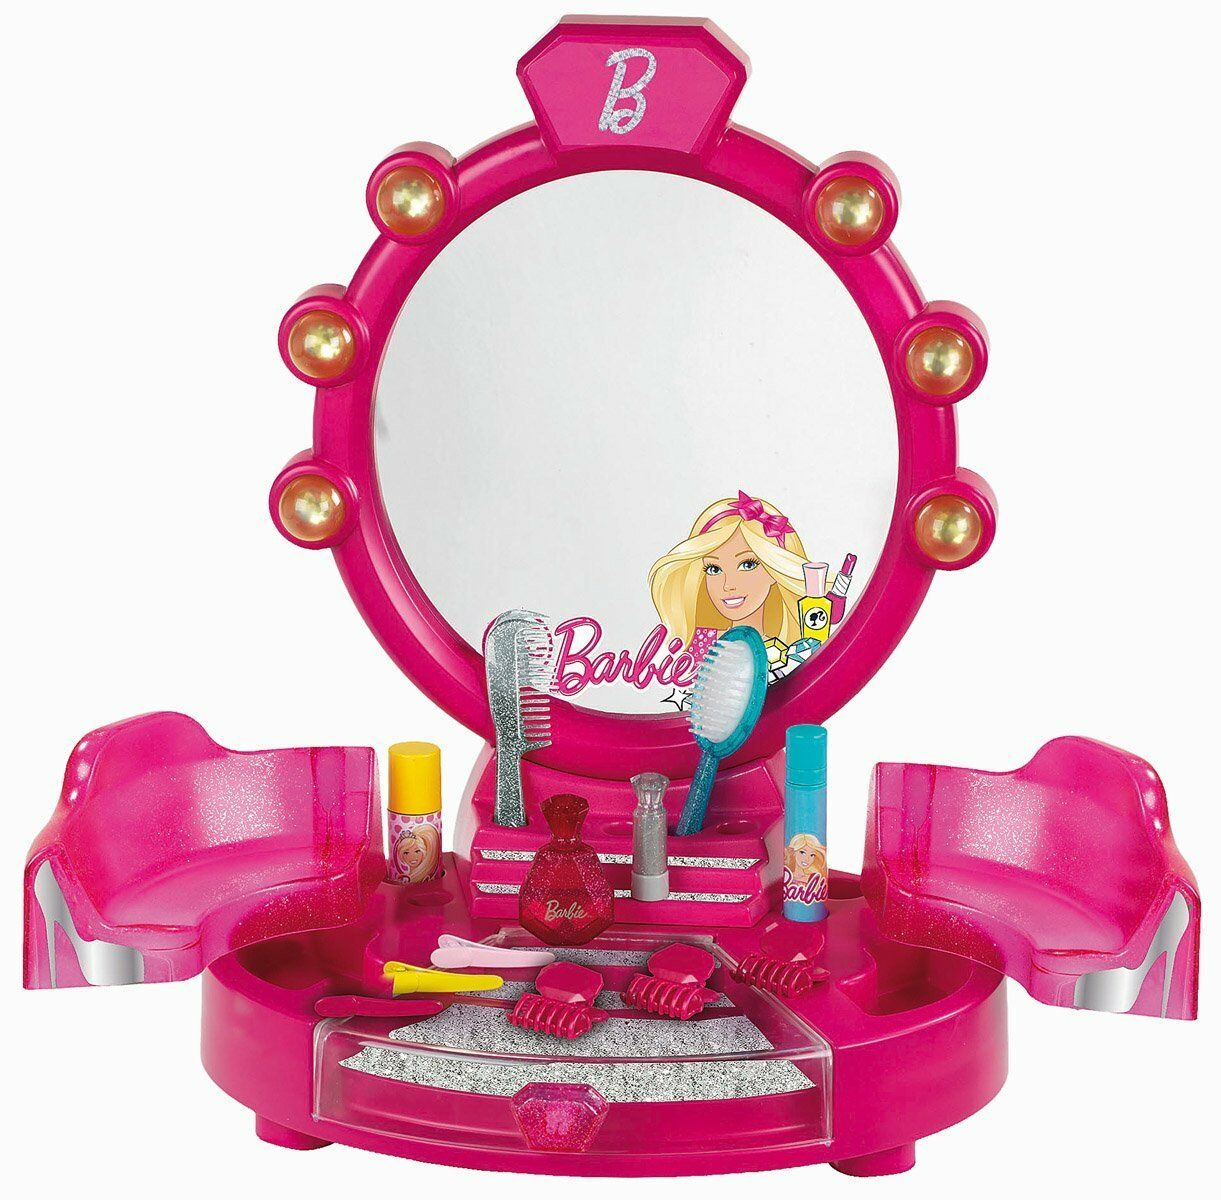 BARBIE Beauty Table Studio with Accessories - New RRP